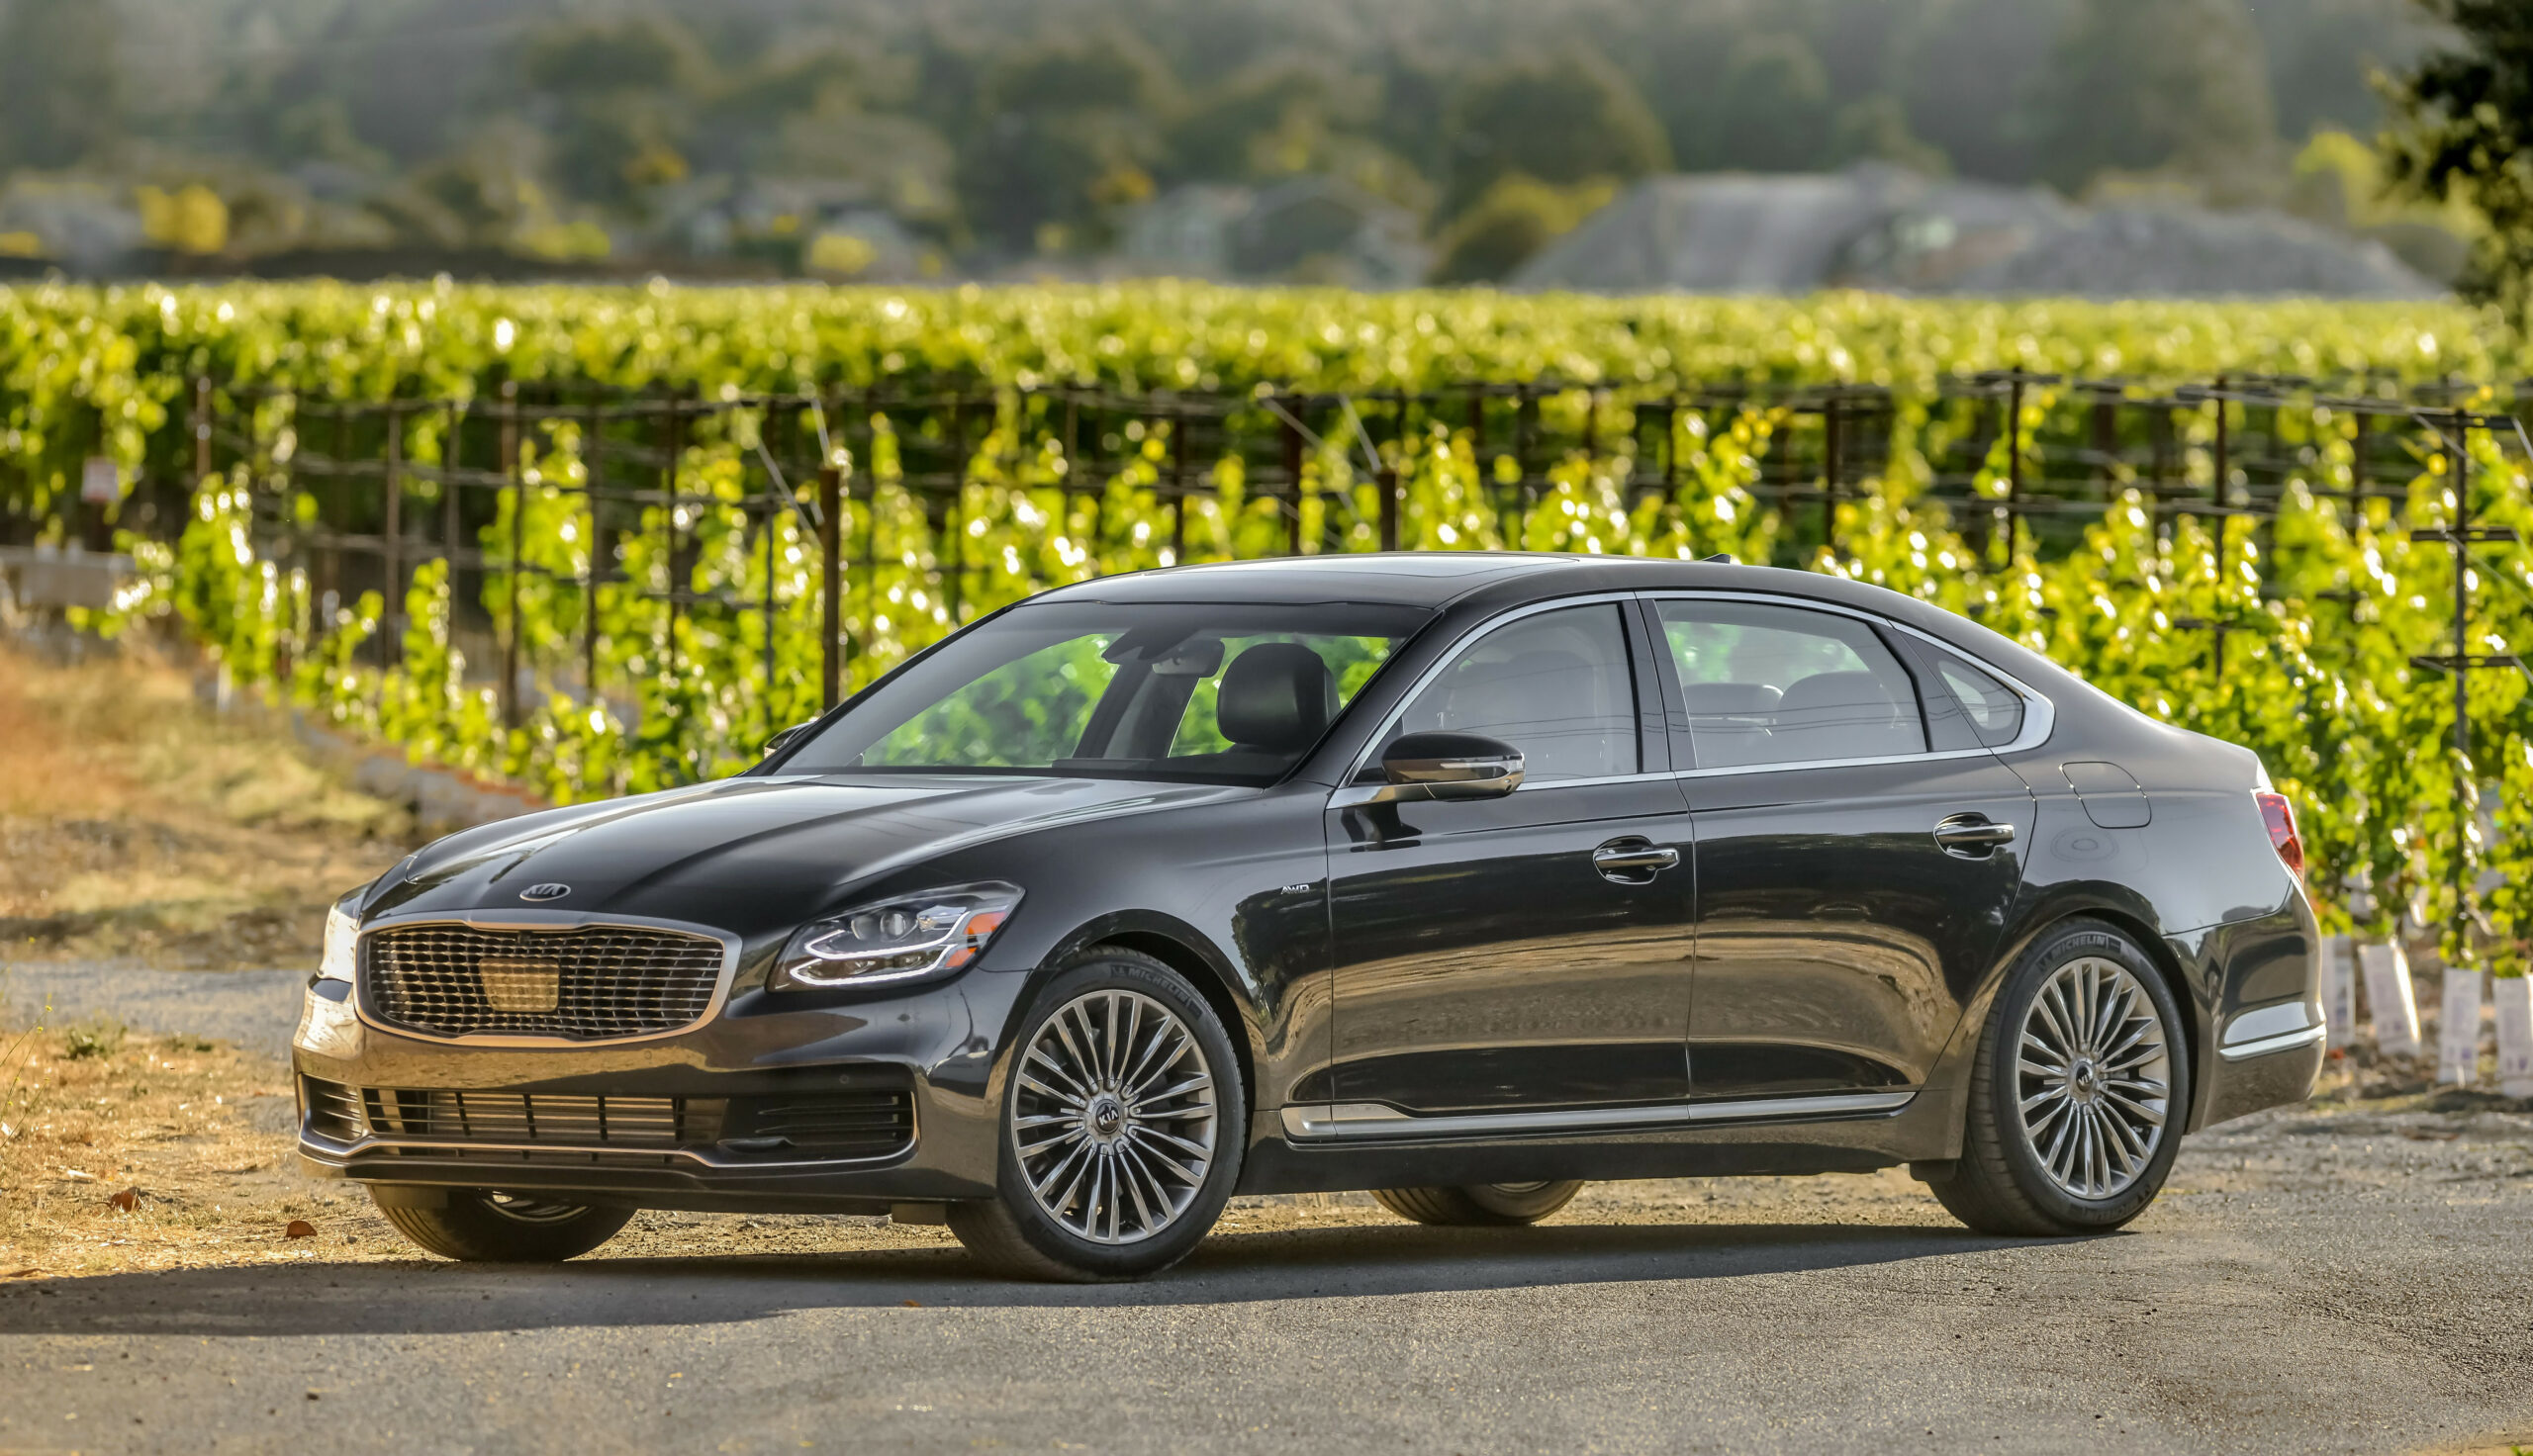 7 Kia K7 Review, Pricing, and Specs